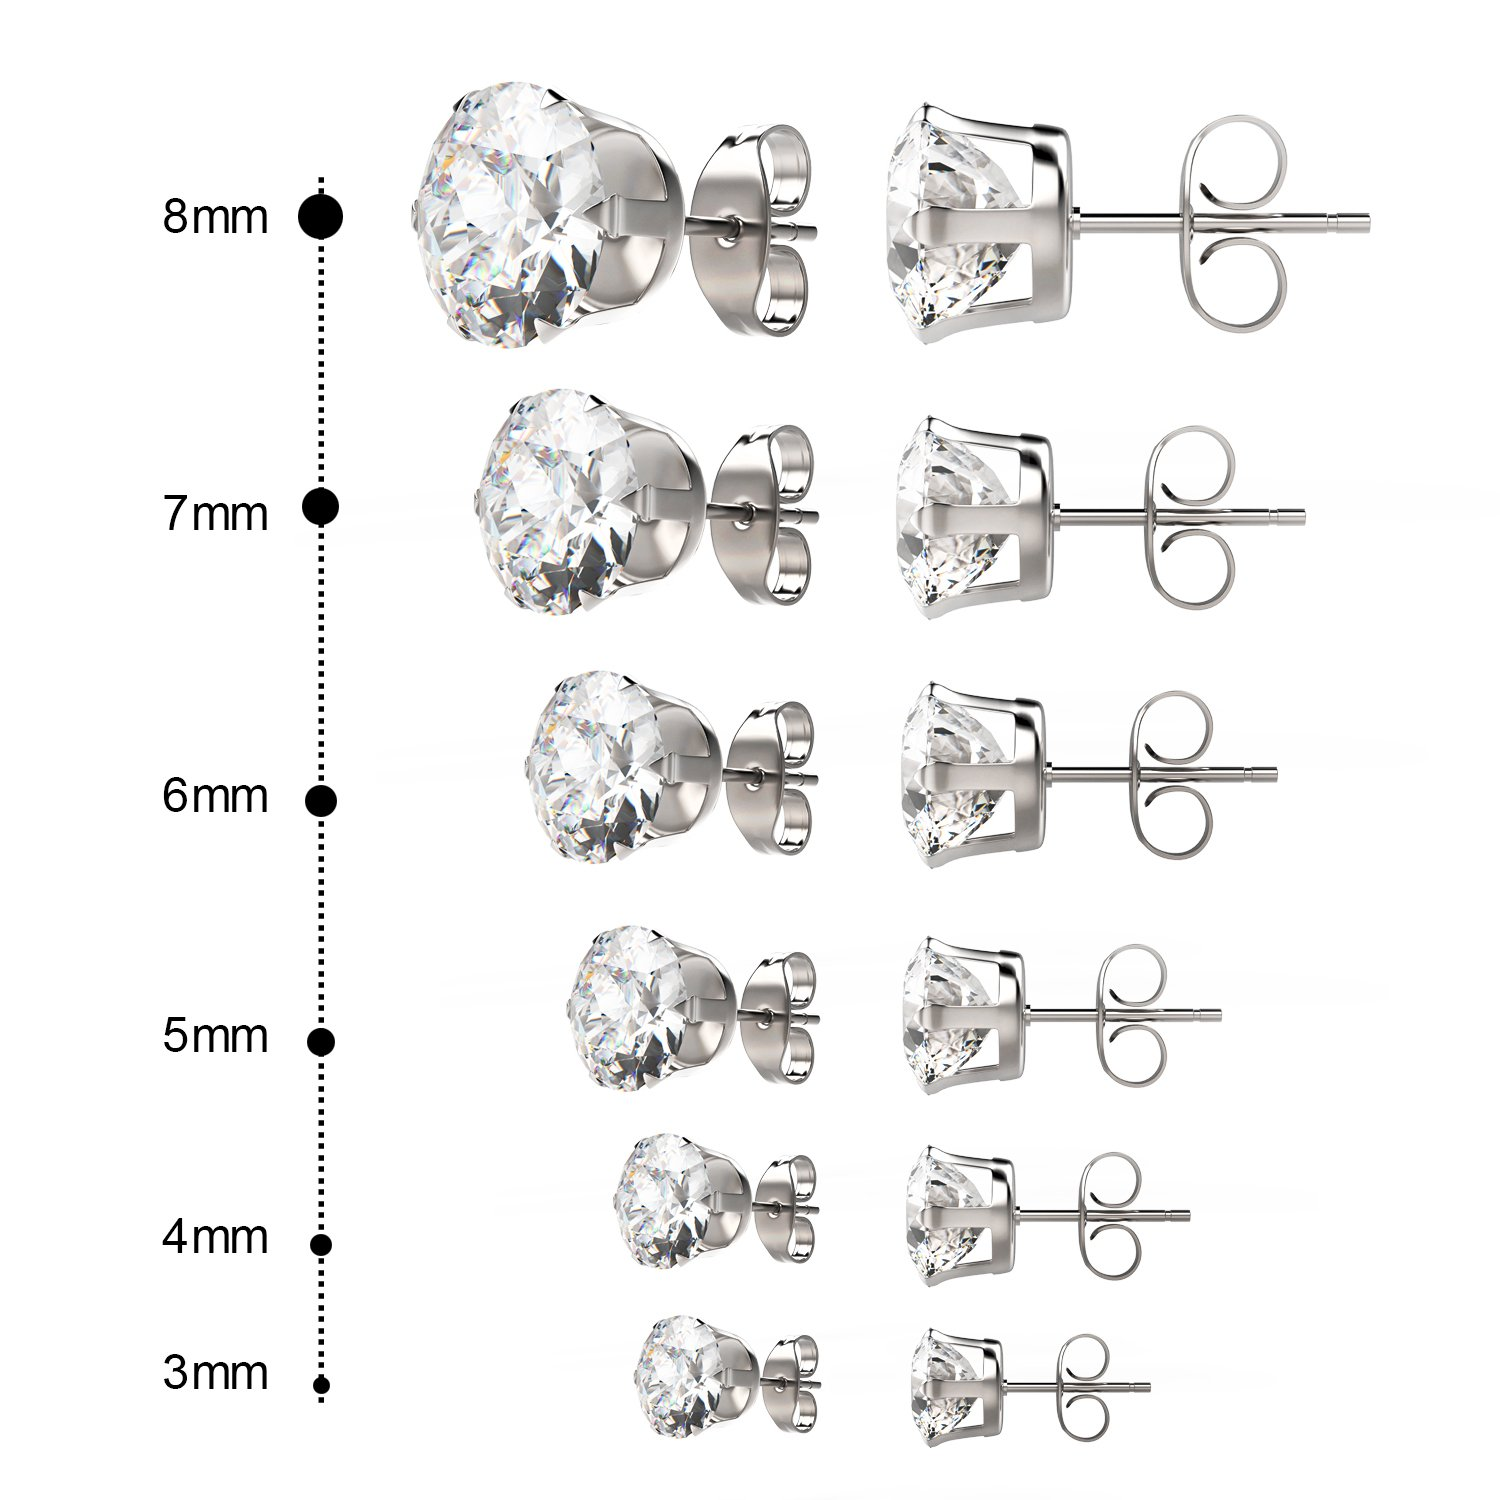 UHIBROS Womens Stainless Steel Stud Earrings Set Hypoallergenic Pierced Cubic Zirconia 6 Pairs 3-8mm